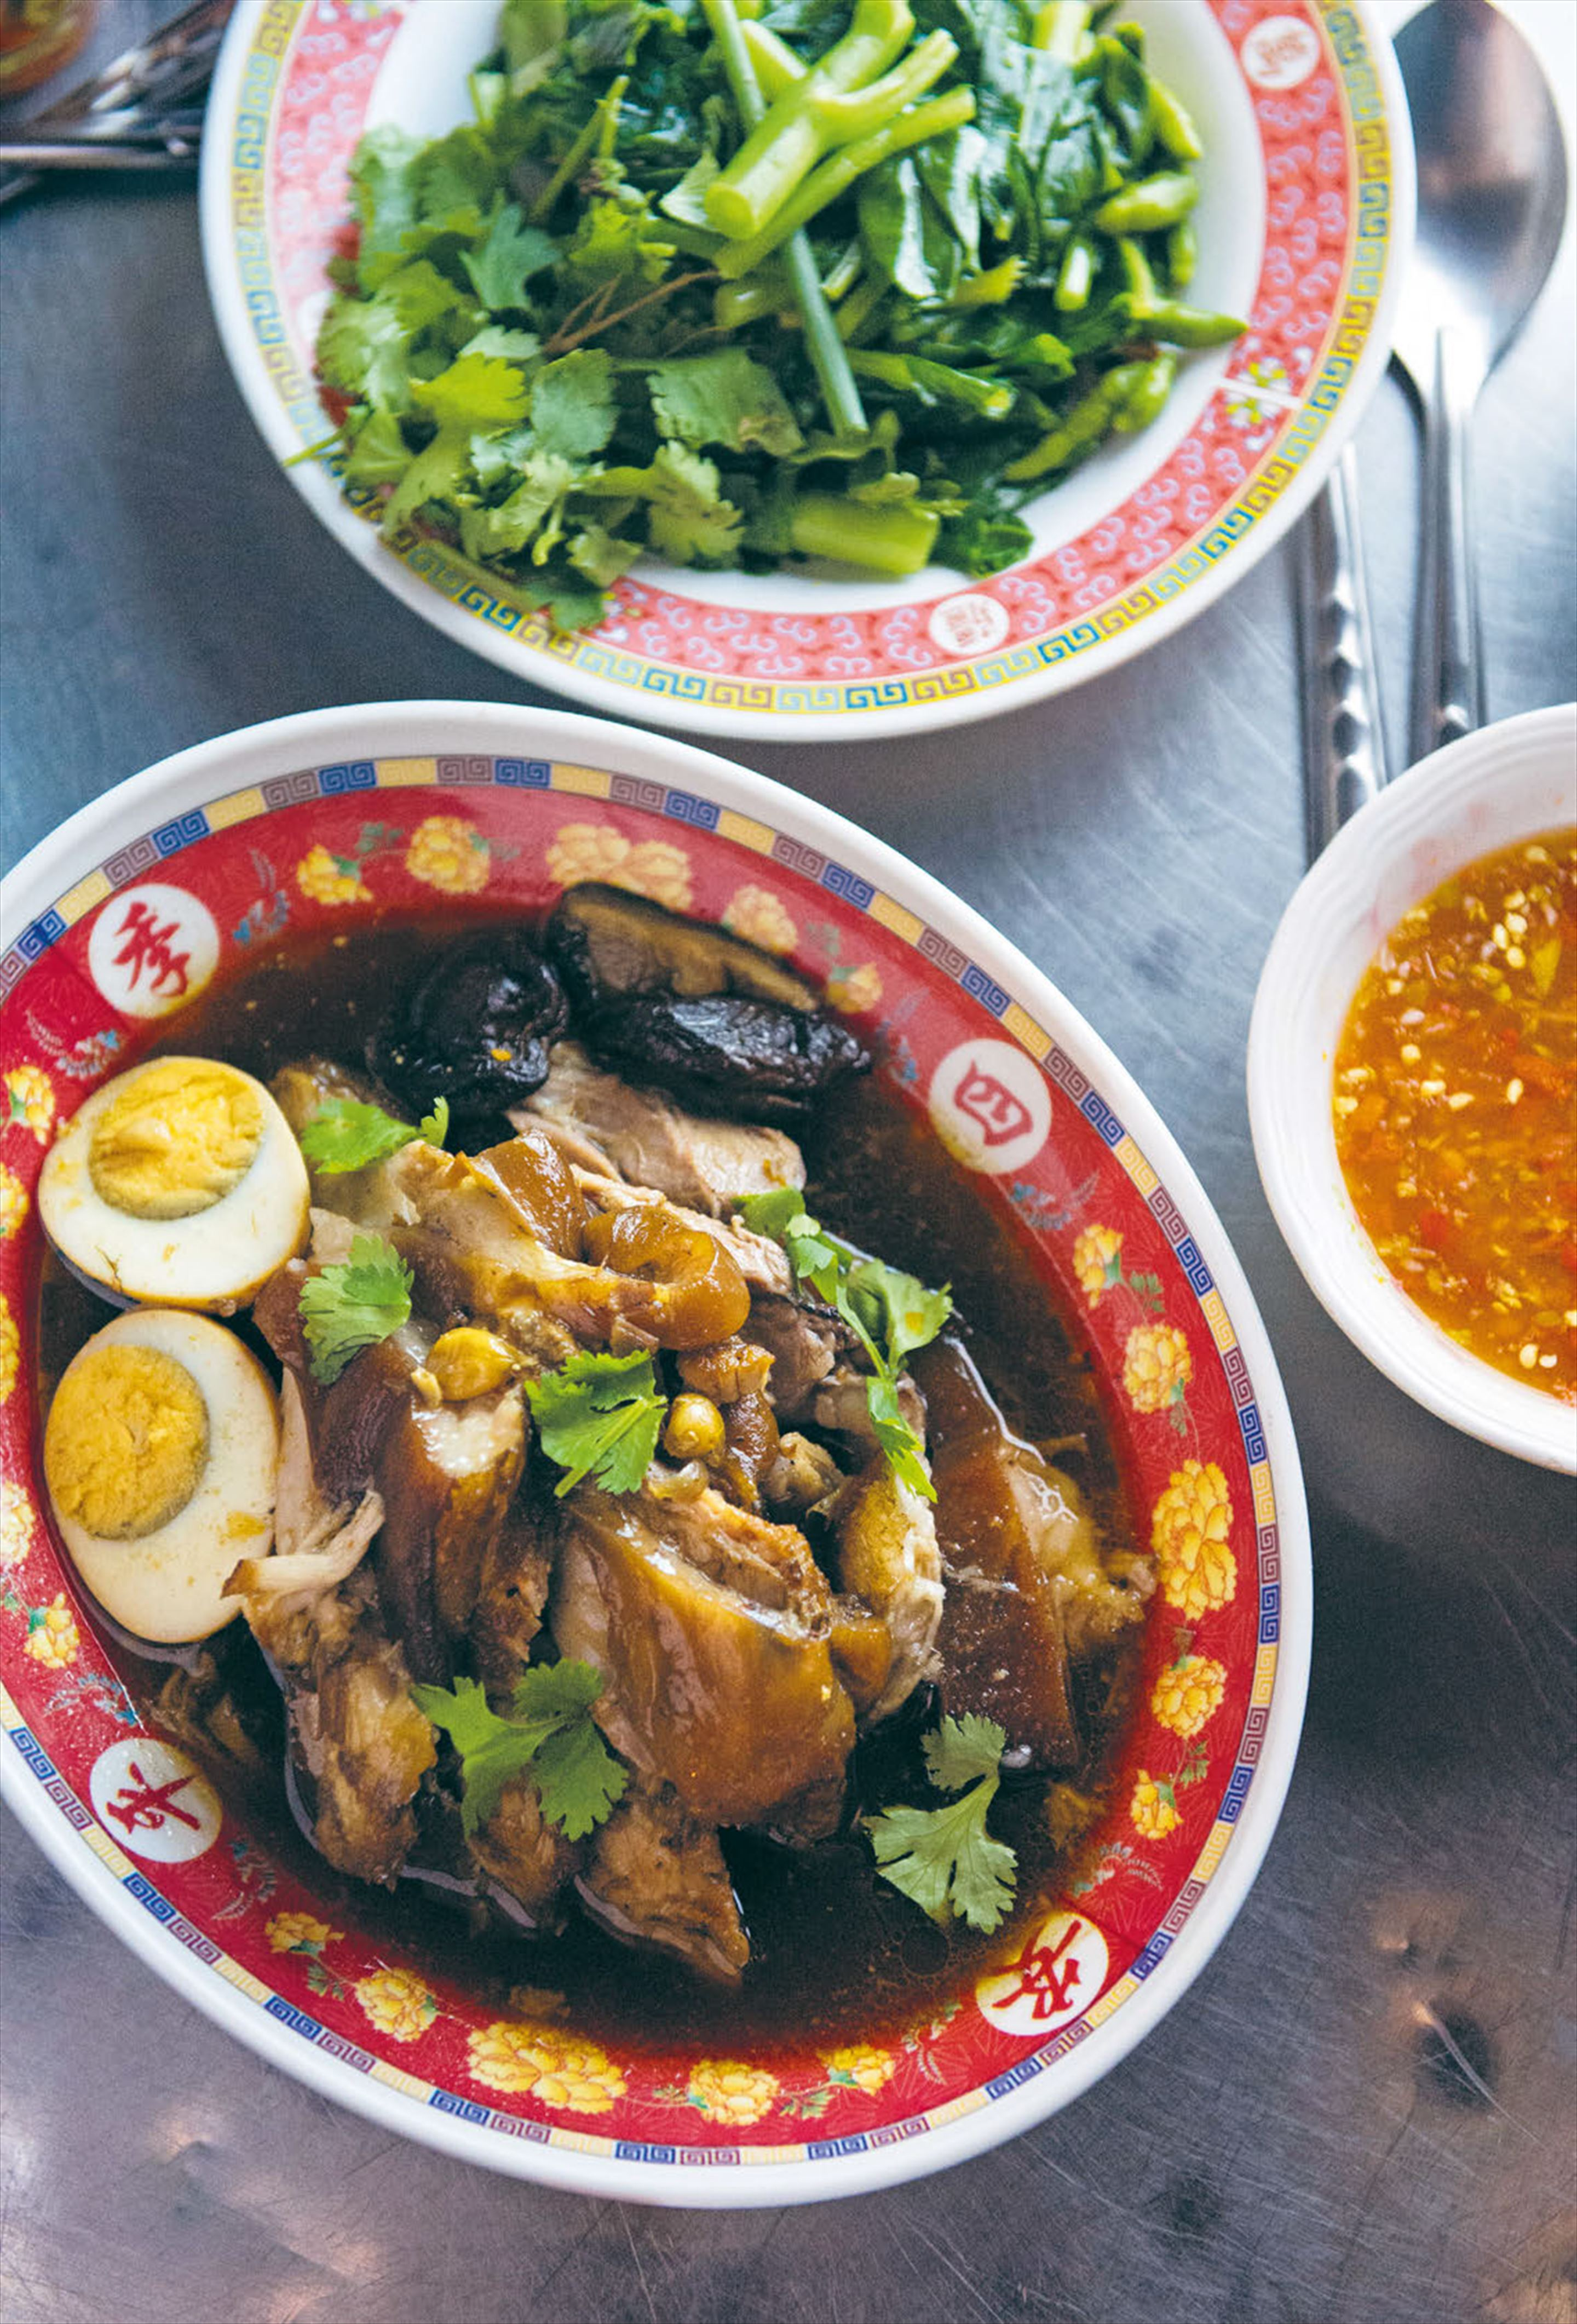 Slow-braised pork hock in soy & coconut juice